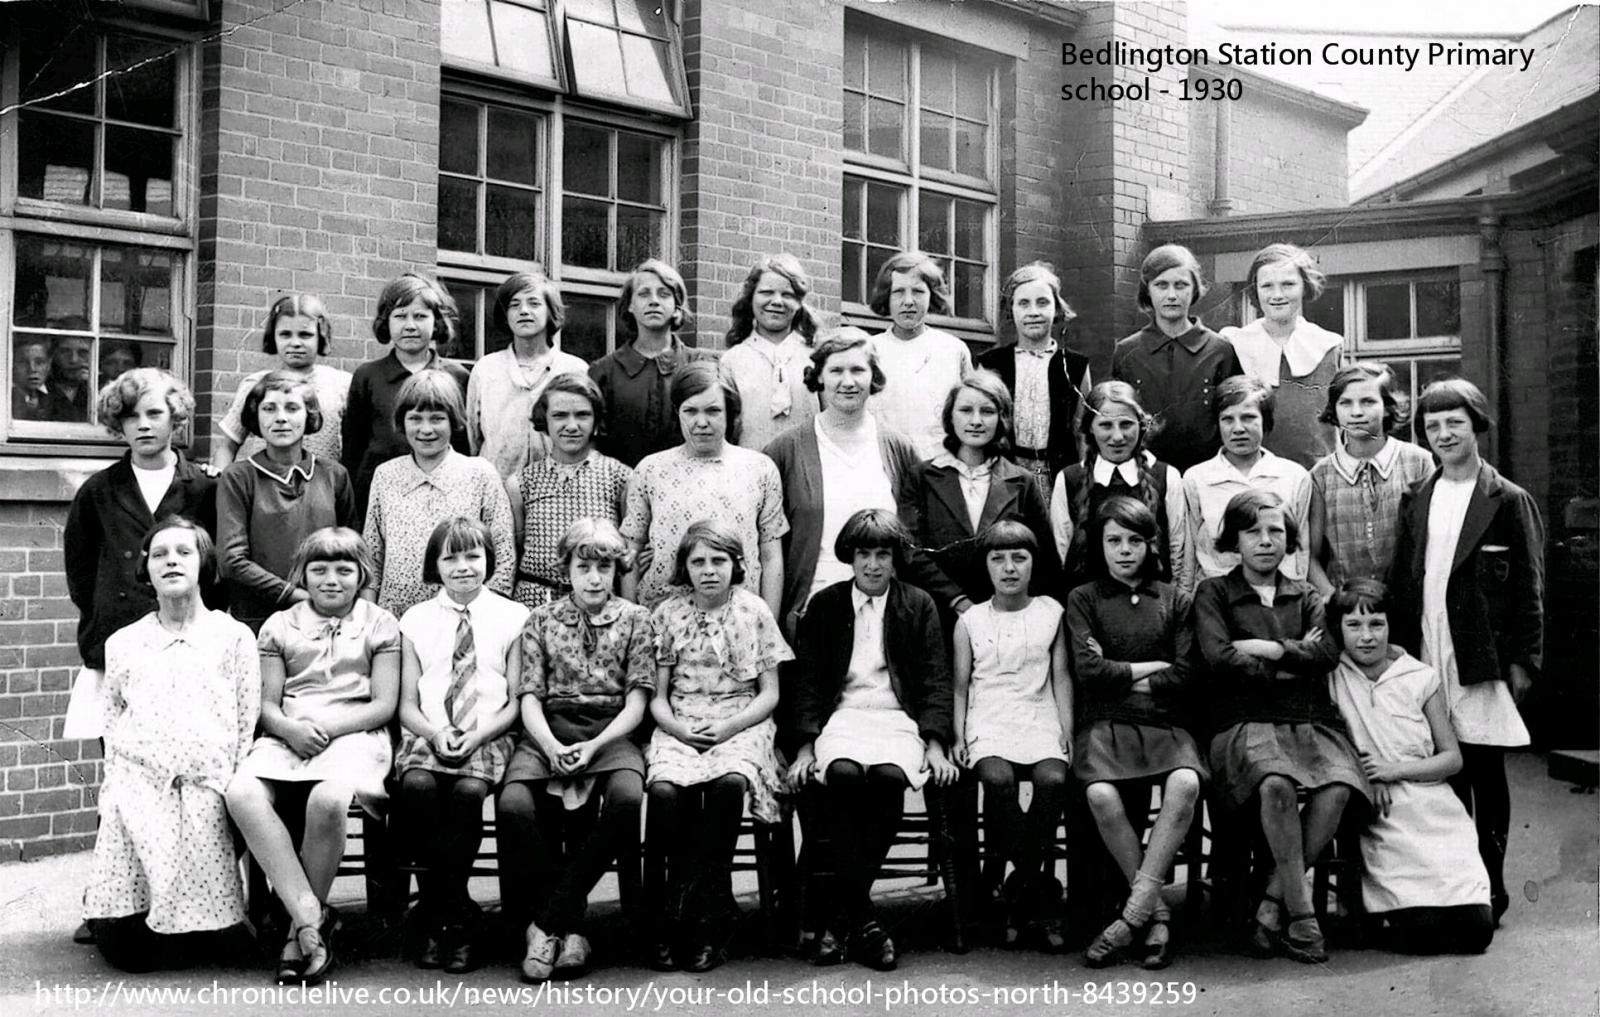 1930 class photo posted in the Evening Chronicle 11/02/2015